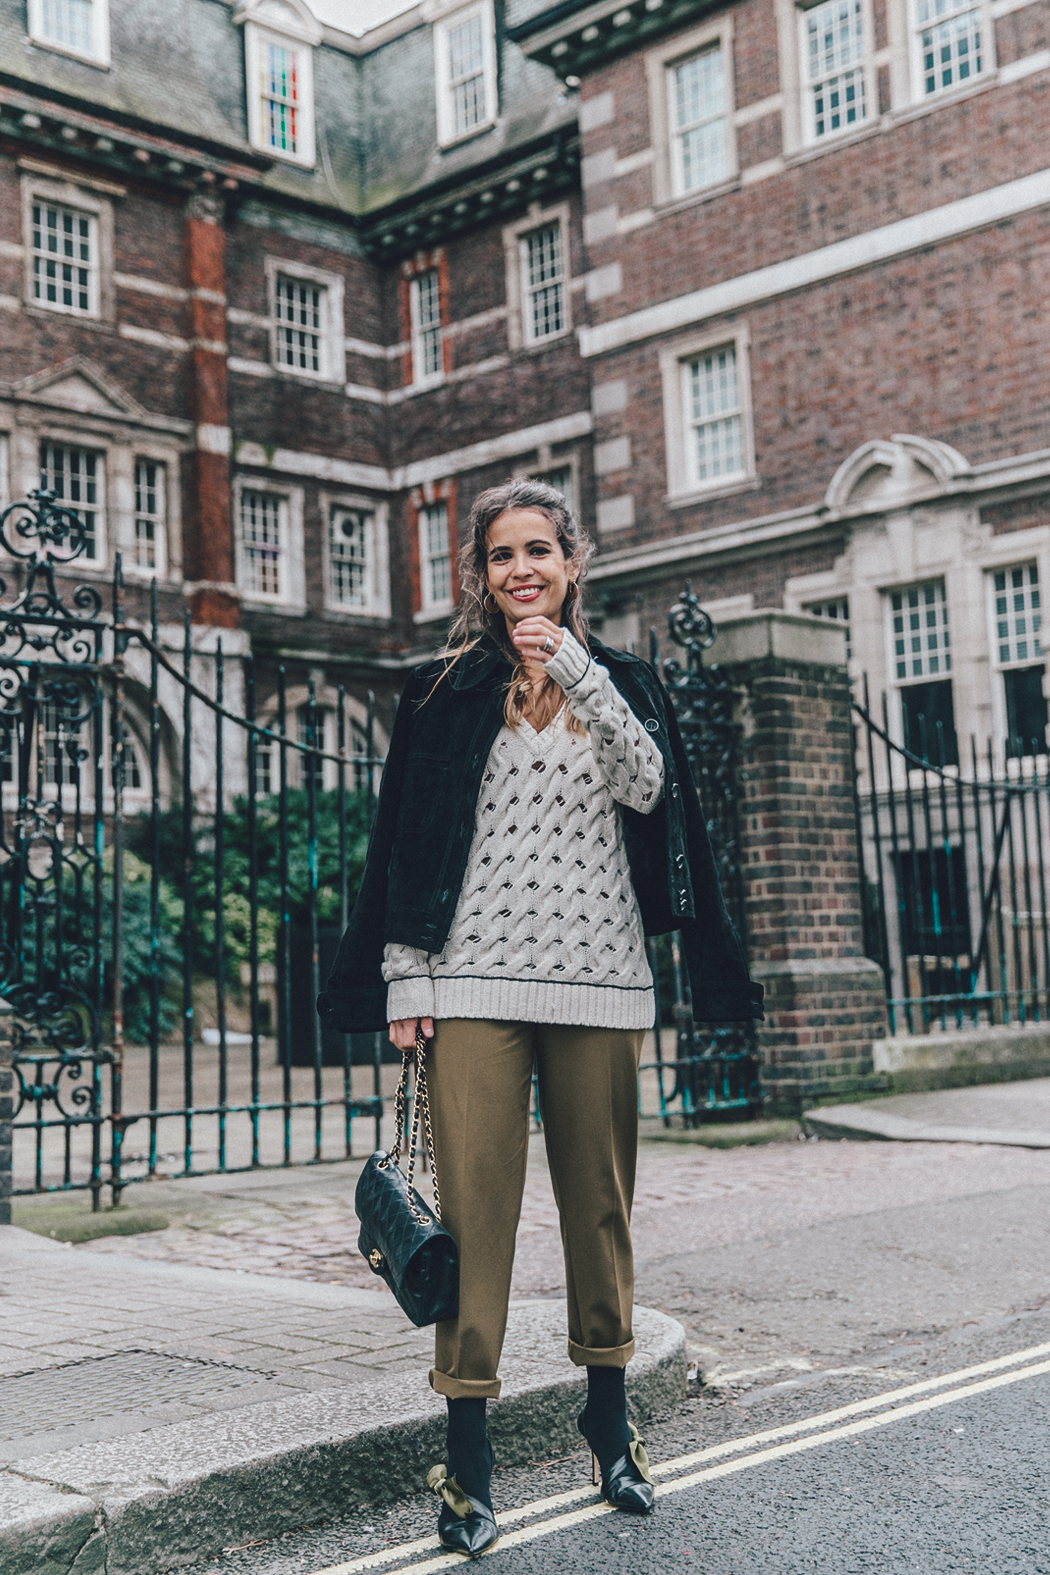 Topshop_Unique-Khaki_Trousers-VNeck_Sweater-Suede_Jacket-Bow_Shoes-Outfit-LFW-London_Fashion_Week_Fall_2016-Street_Style-14